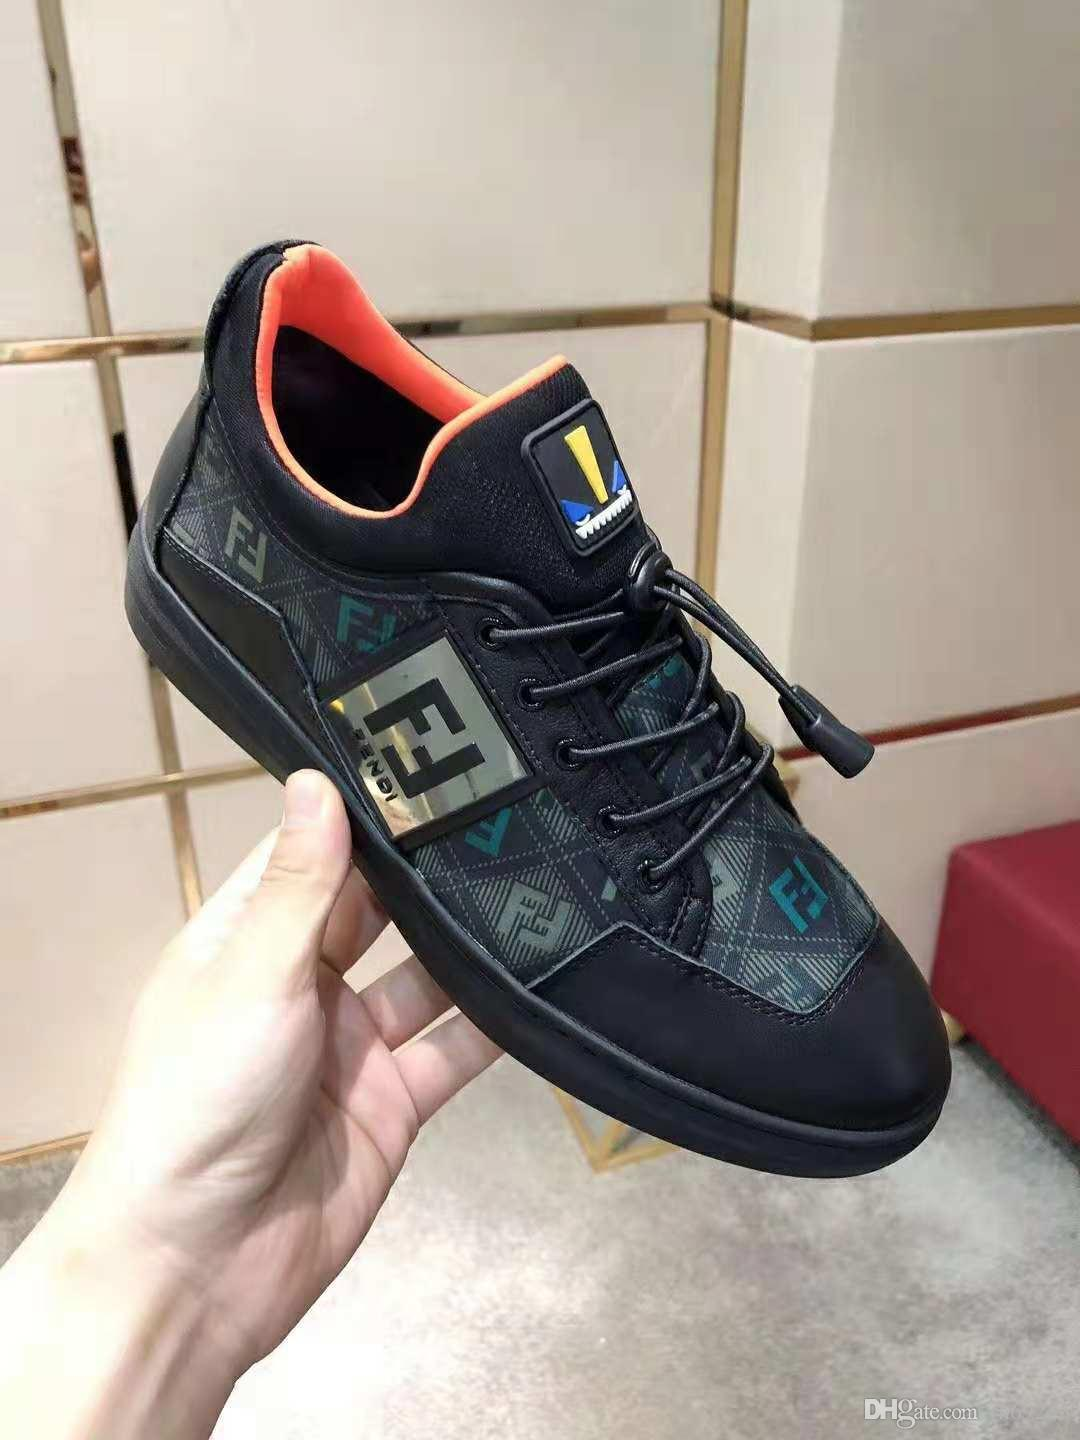 2ef62cb9004 Black Casual Shoes Lace Up Designer Comfort Pretty Girl Men Sneakers Casual  Leather Shoes Men Womens Sneakers Extremely Durable Stability Online with  ...